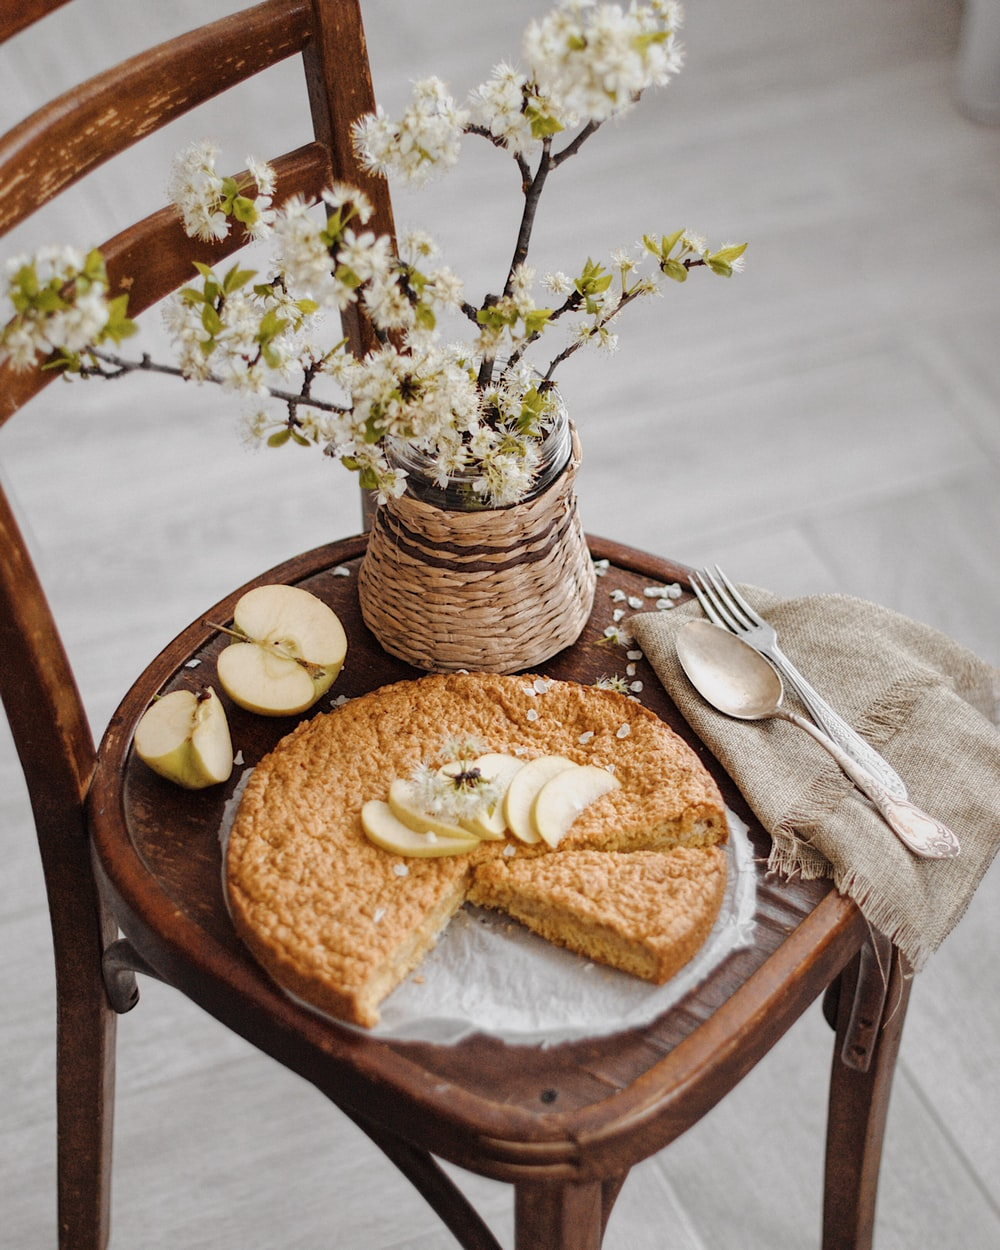 bread on brown wooden round plate